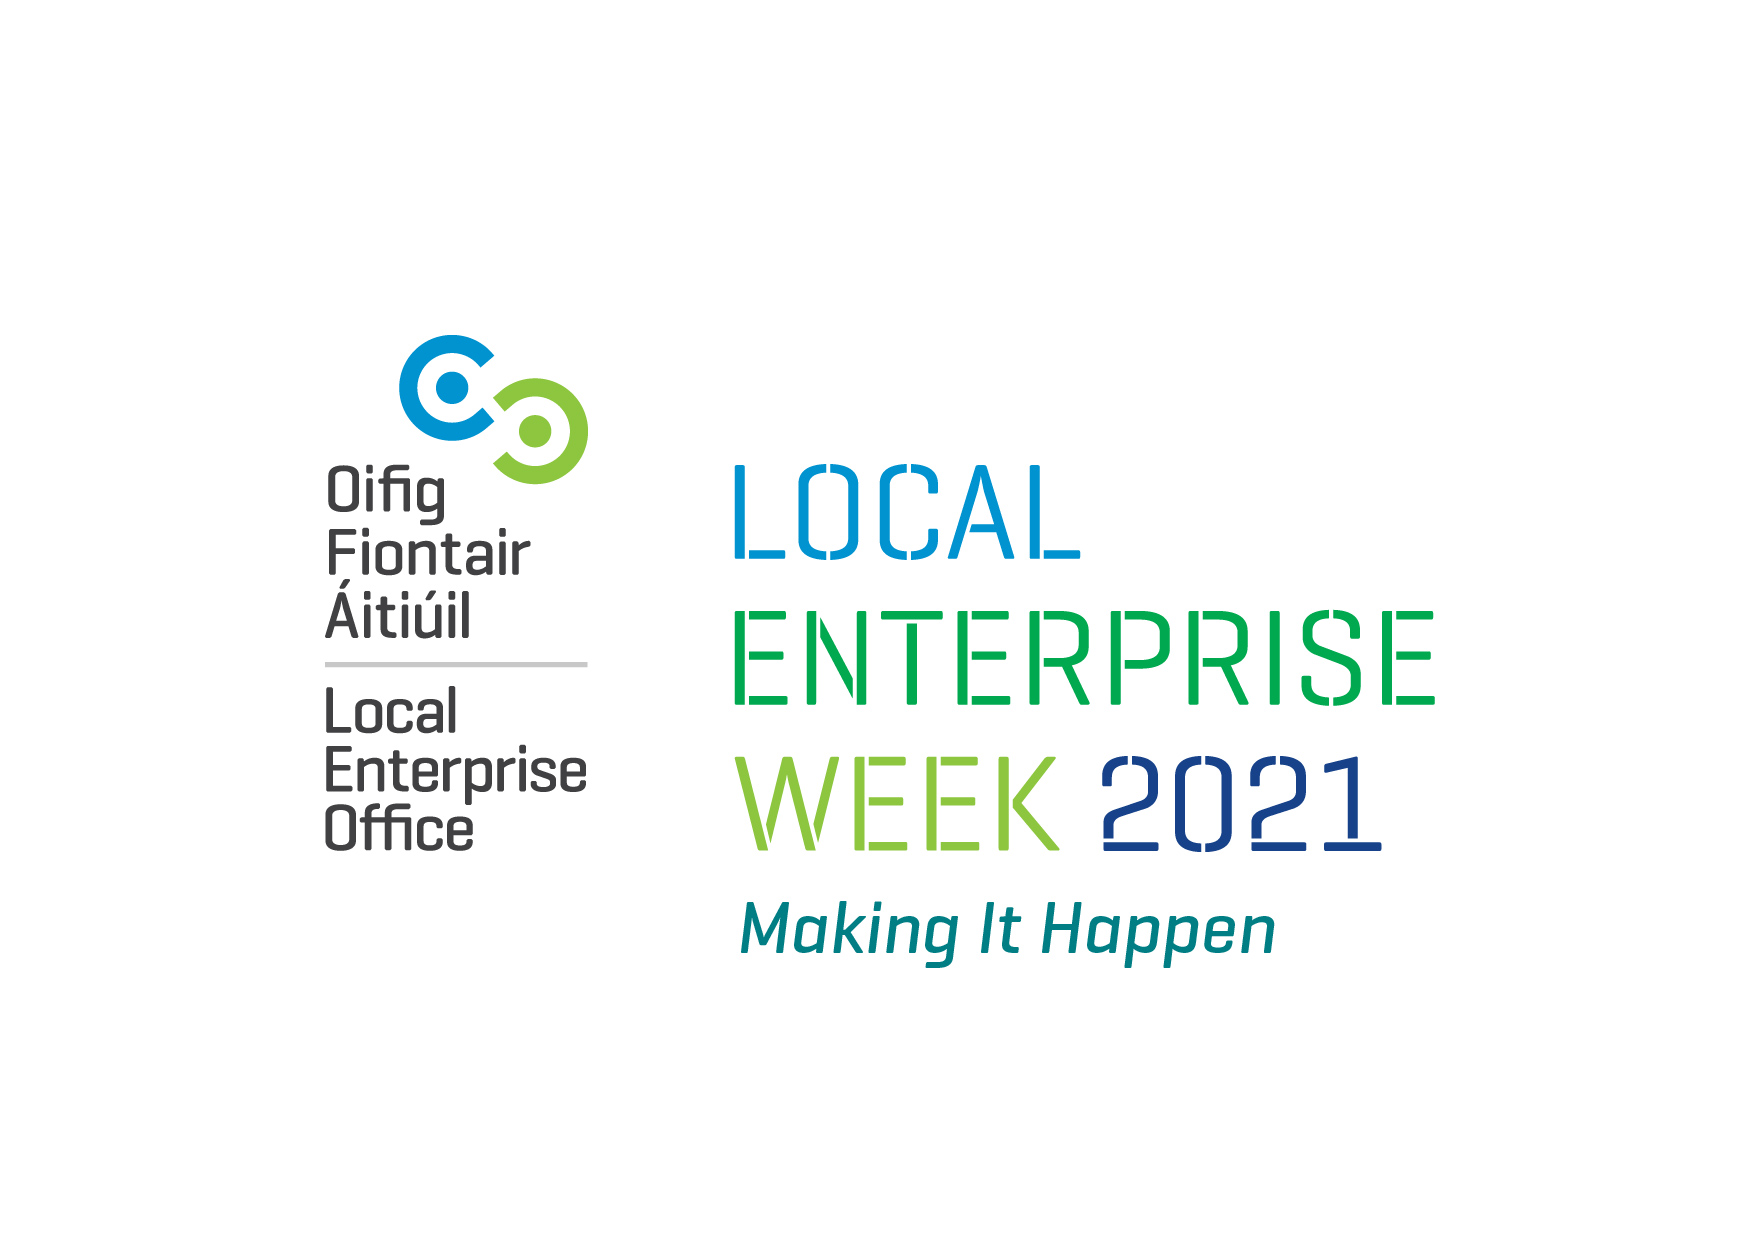 Enterprise Week 2021